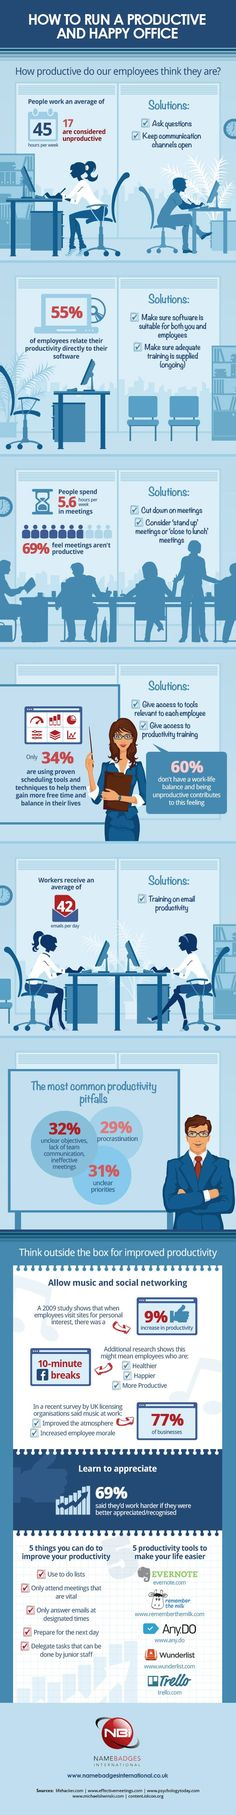 How to Run a Productive Office